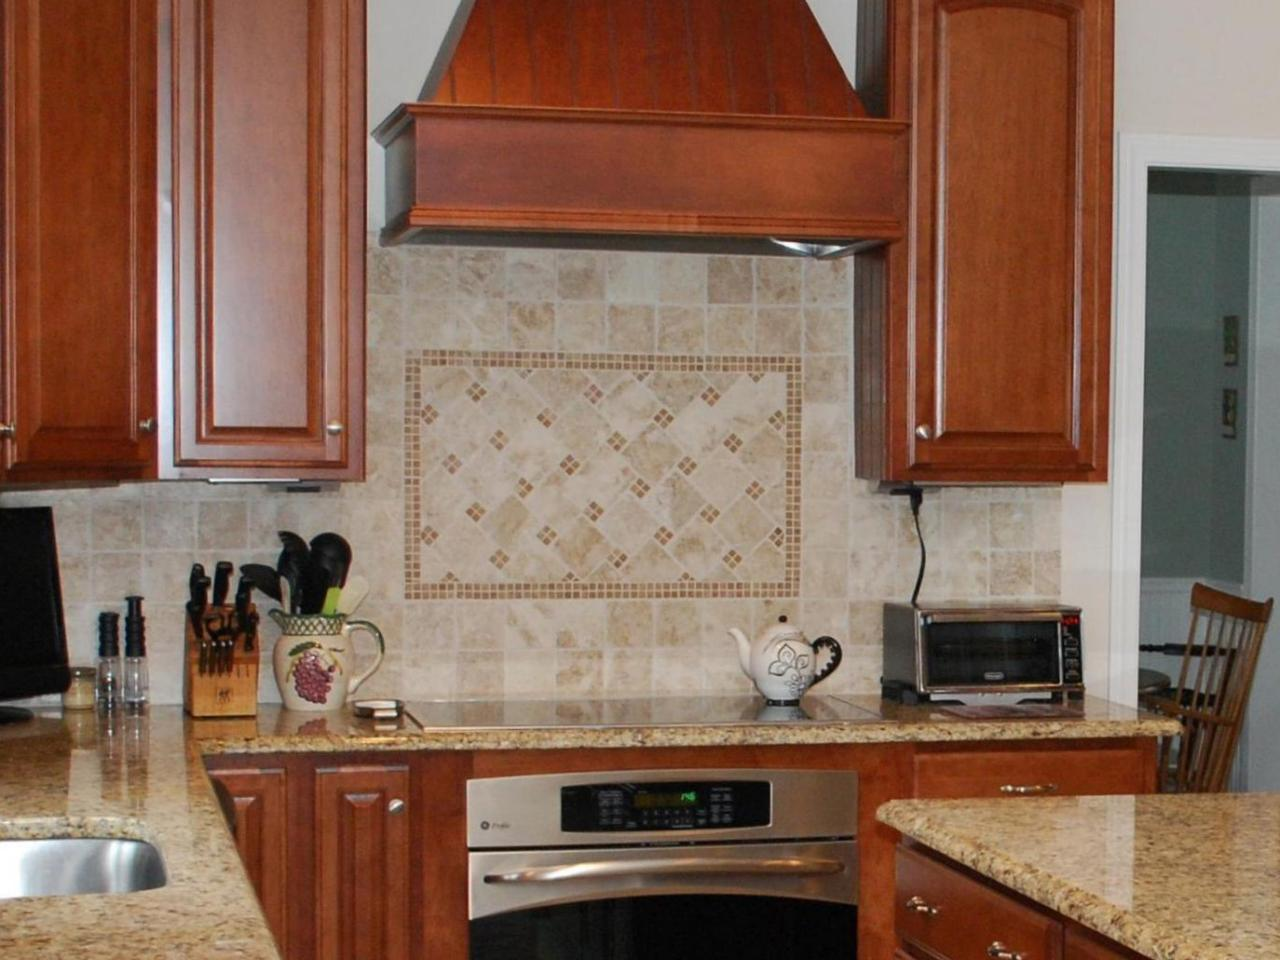 Kitchen Backsplash Idea kitchen backsplash design ideas | hgtv